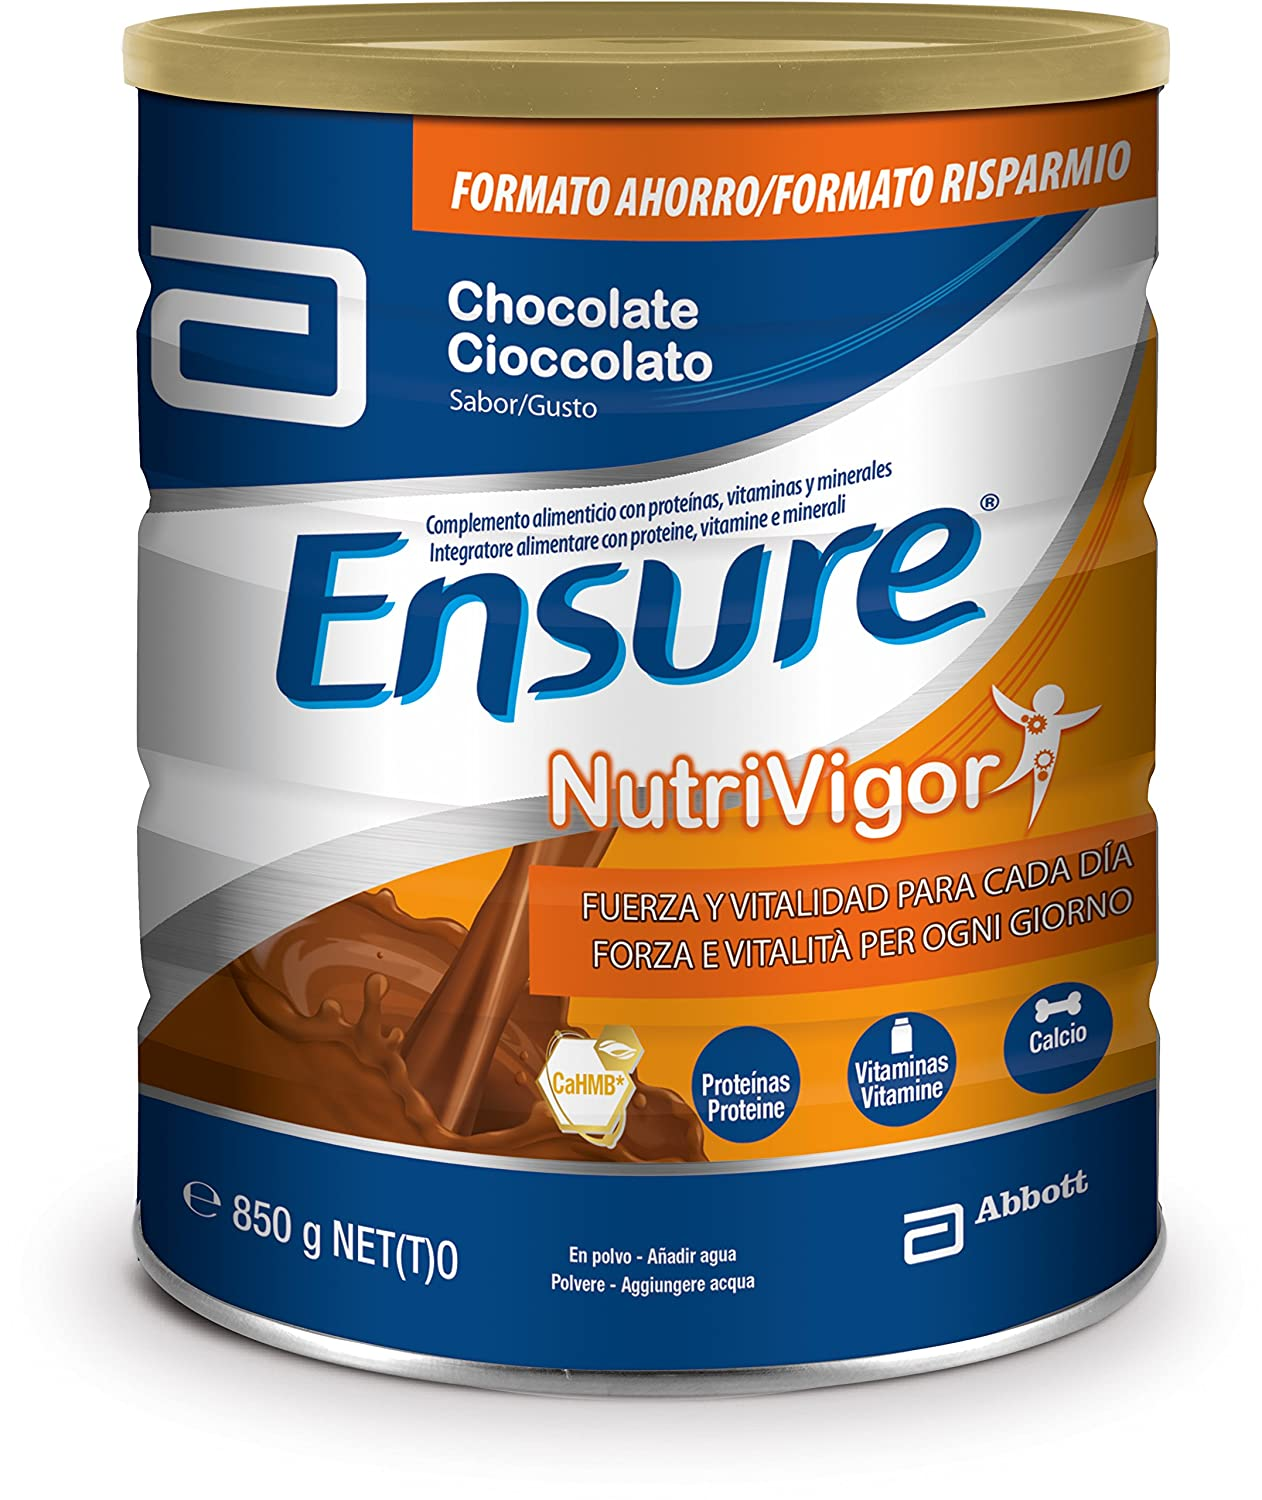 Amazon.com: Ensure Nutrivigor Cioccolato Integratore Alimentare 850g: Health & Personal Care